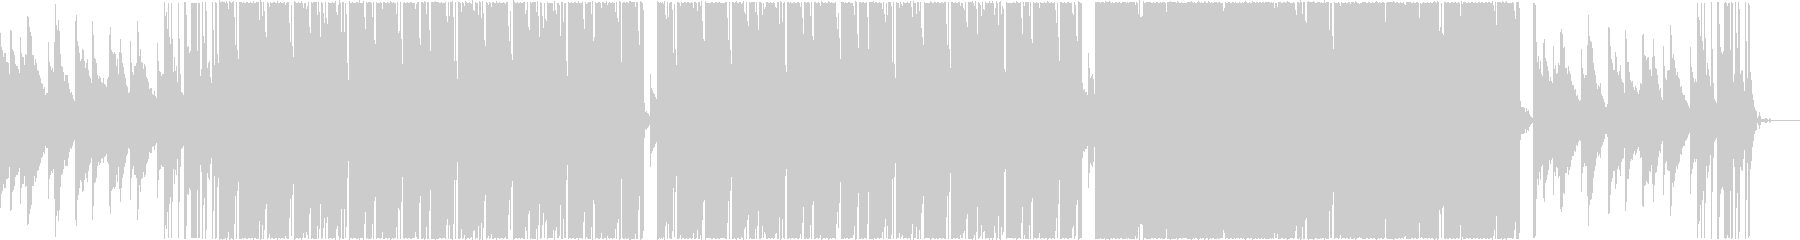 "Cool and heavy trap BGM ""heavy bass""'s unreproduced waveform"